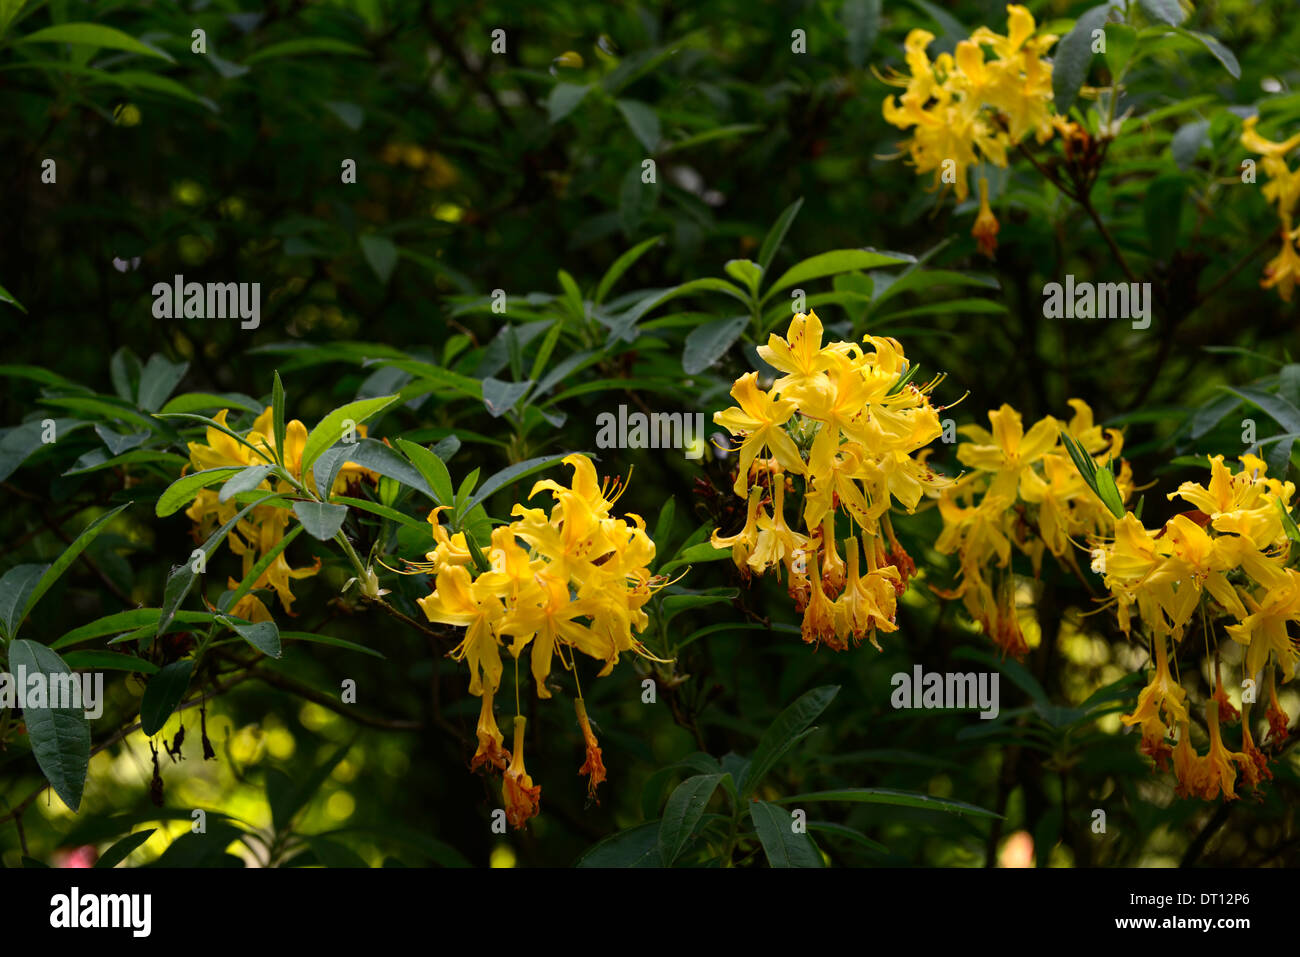 rhododendron luteum yellow azalea pontica rhododendrons shrubs yellow flowers flowering ericaceous tree shrub - Stock Image